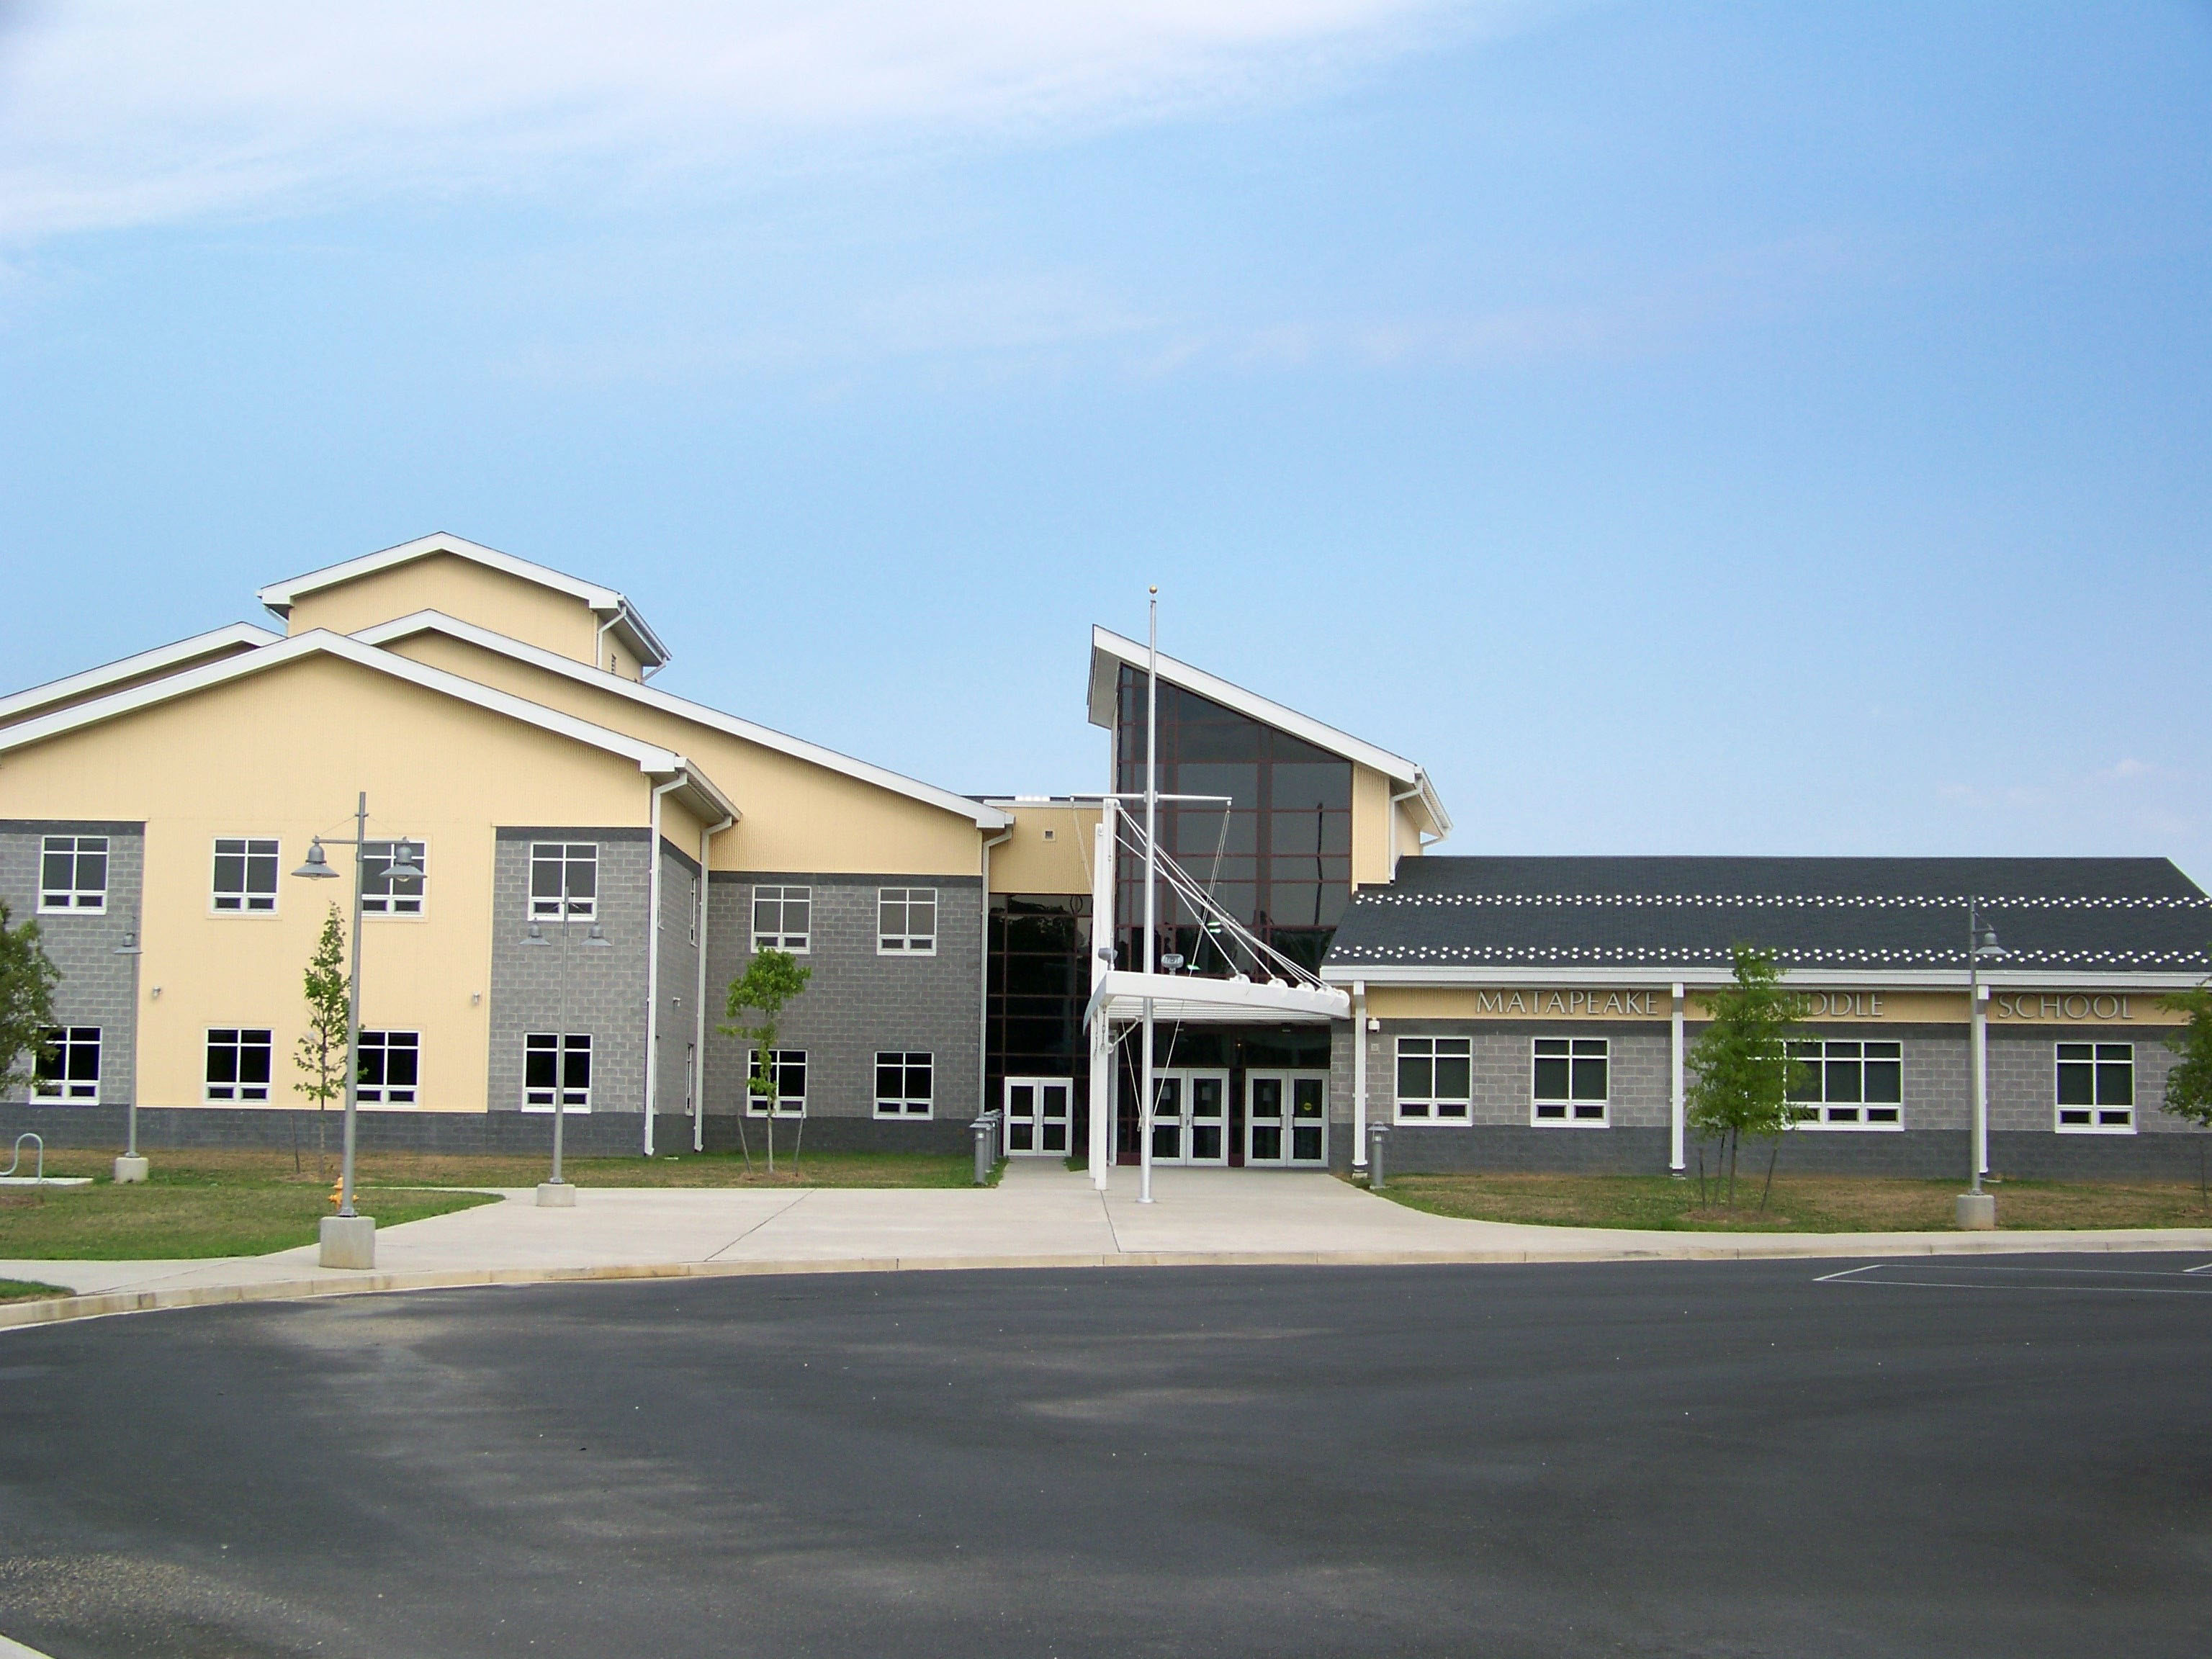 image of public school building